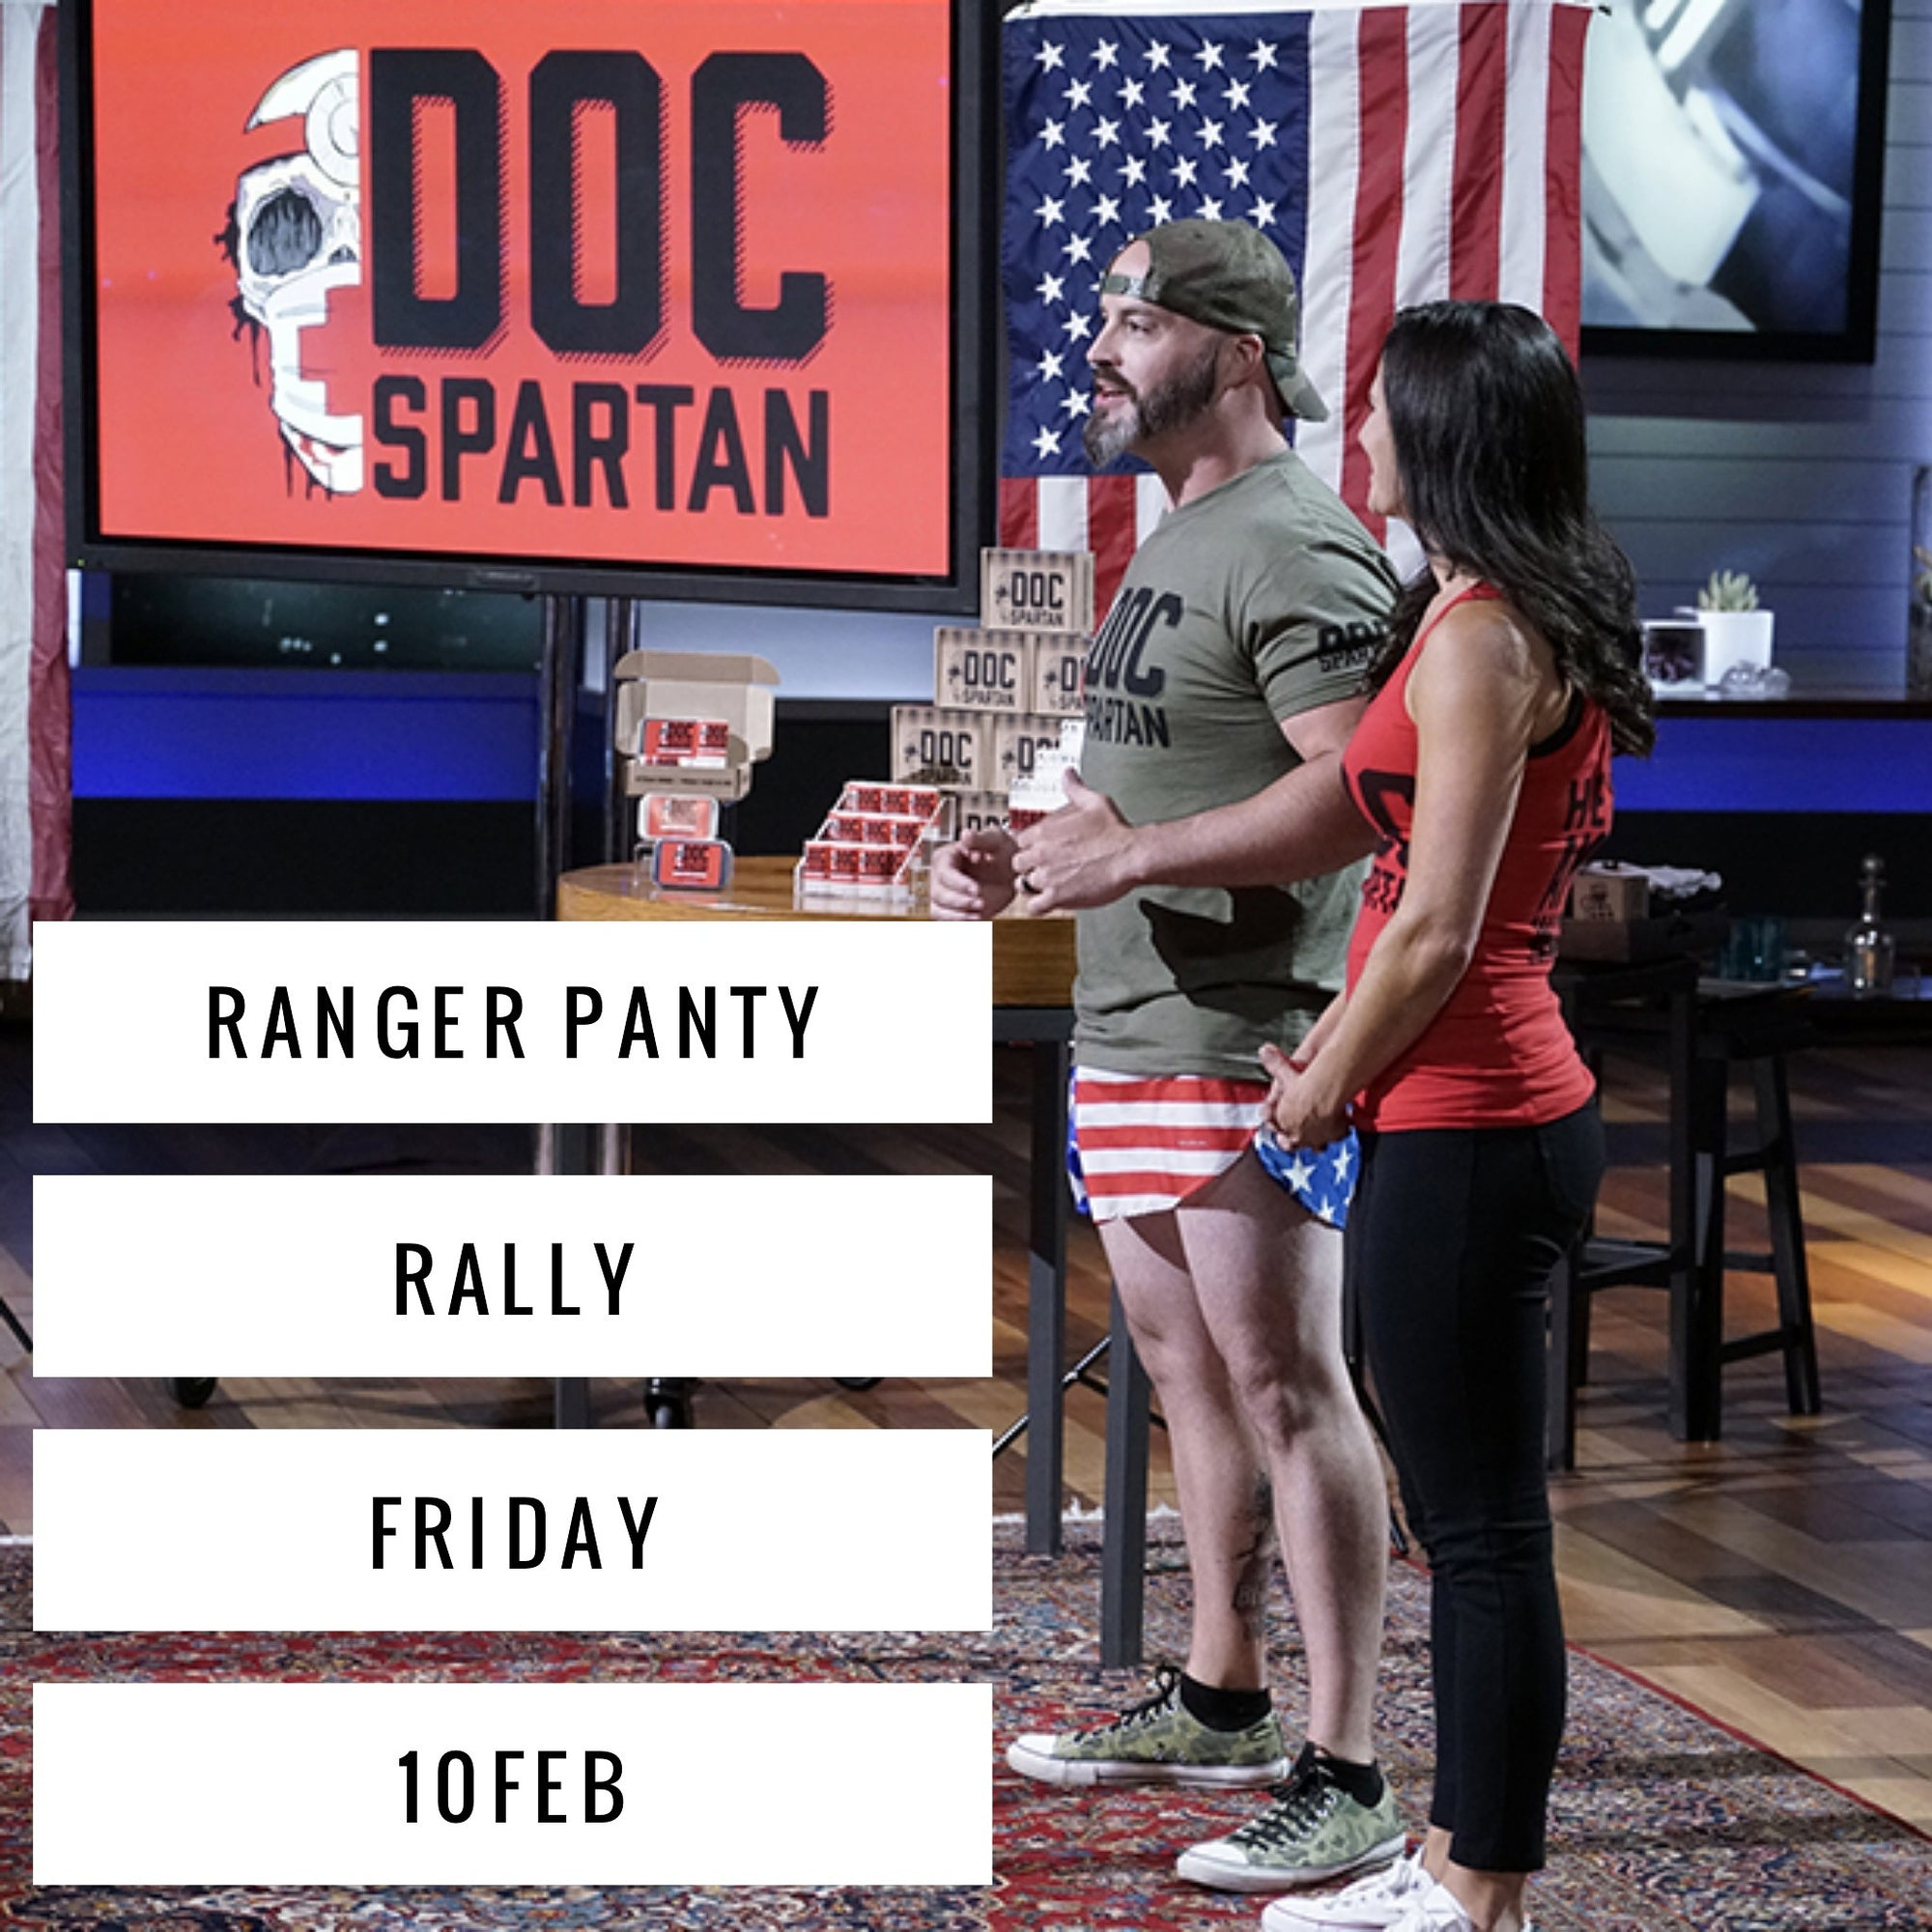 Ranger Panty Rally 10FEB!